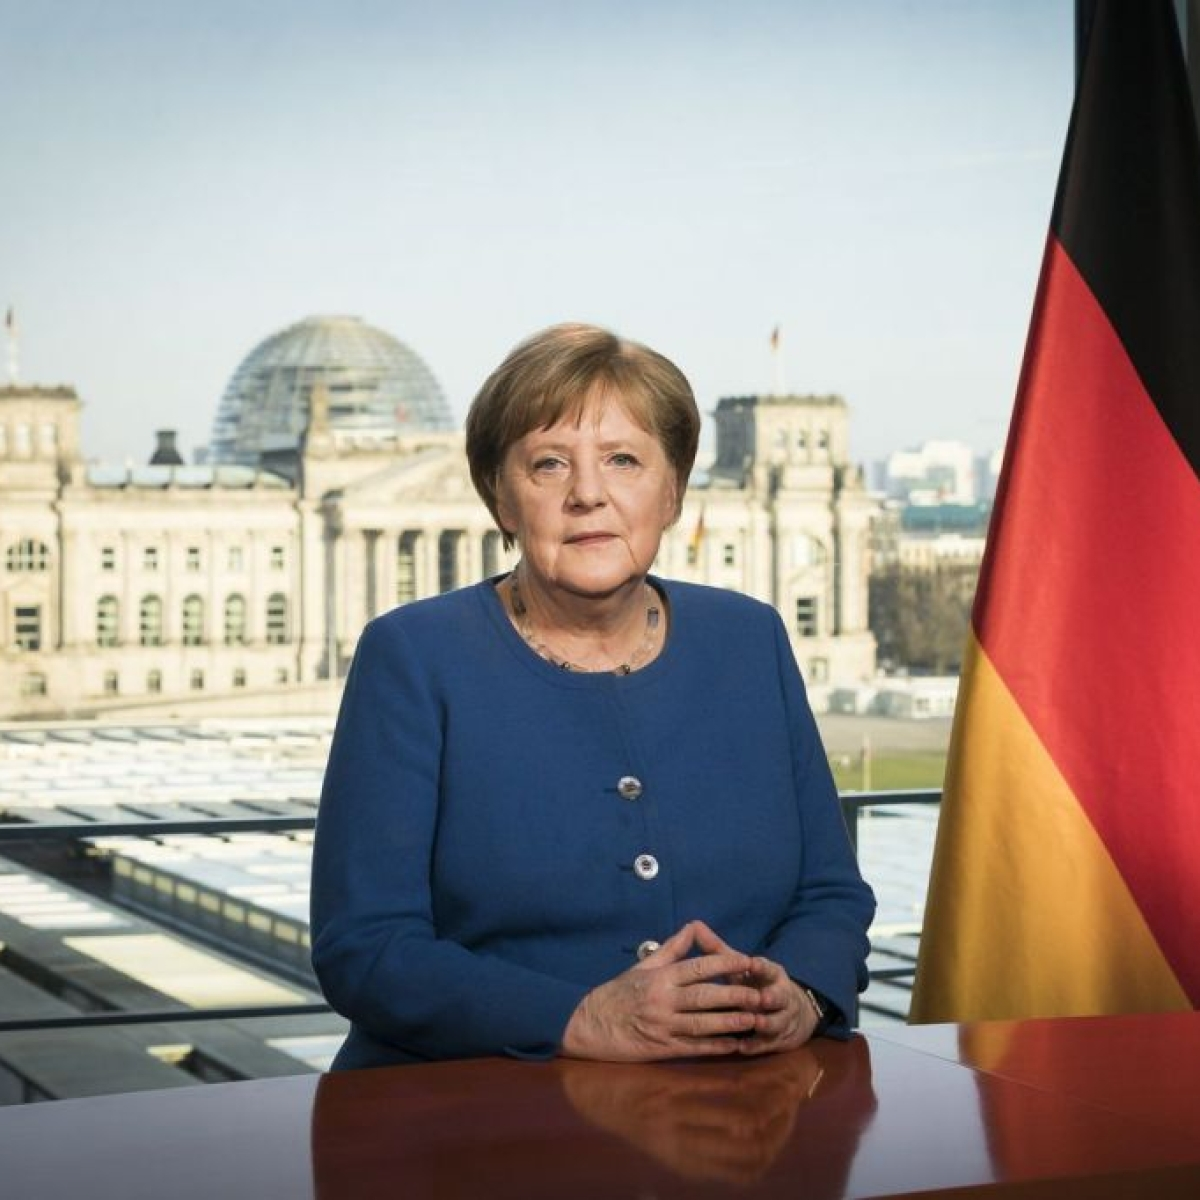 Germany's Angela Merkel in quarantine after doctor who treated her tested positive for coronavirus